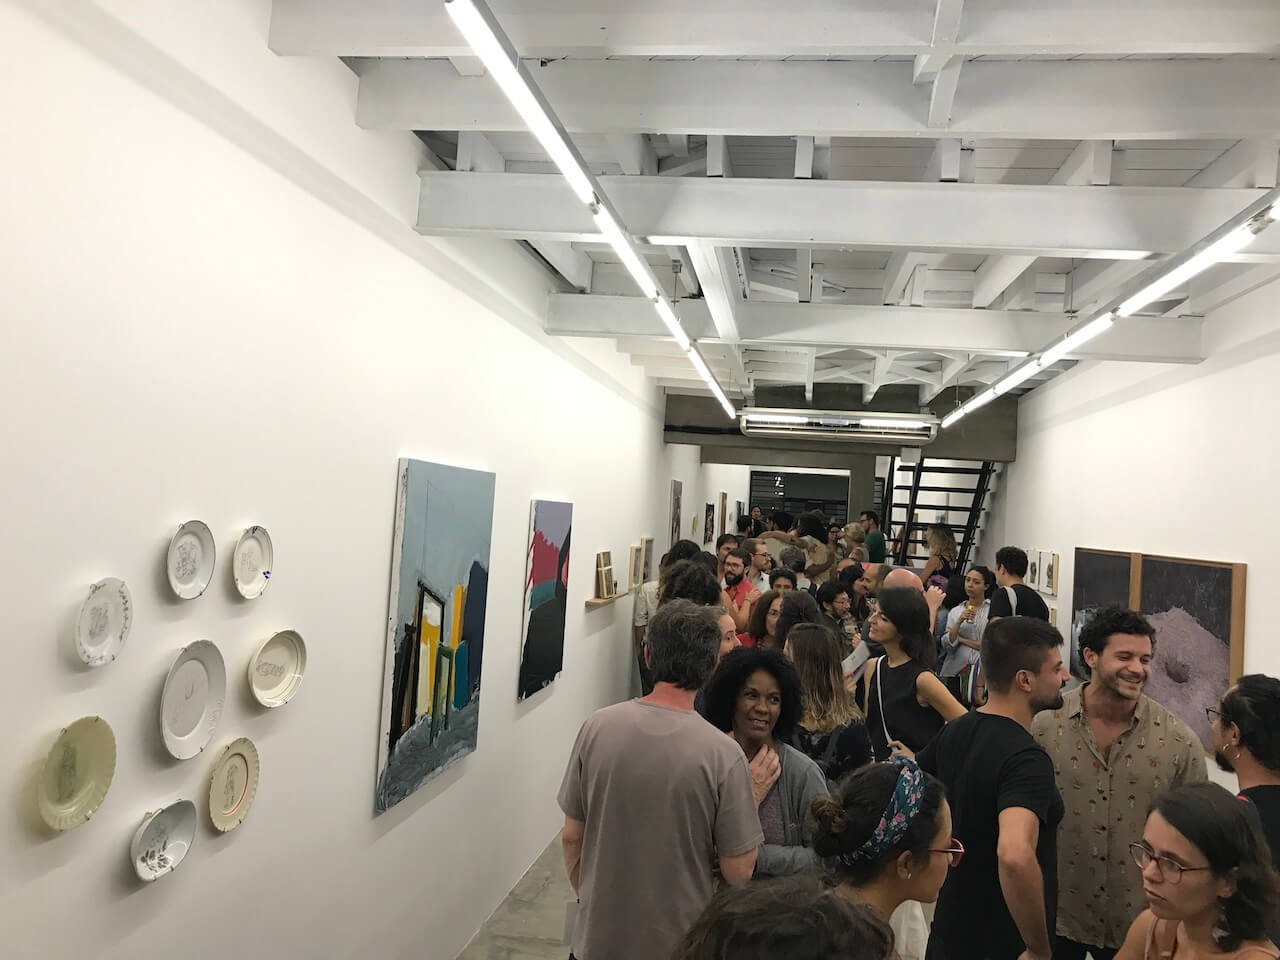 Artists without gallery 2018 at Sancovsky